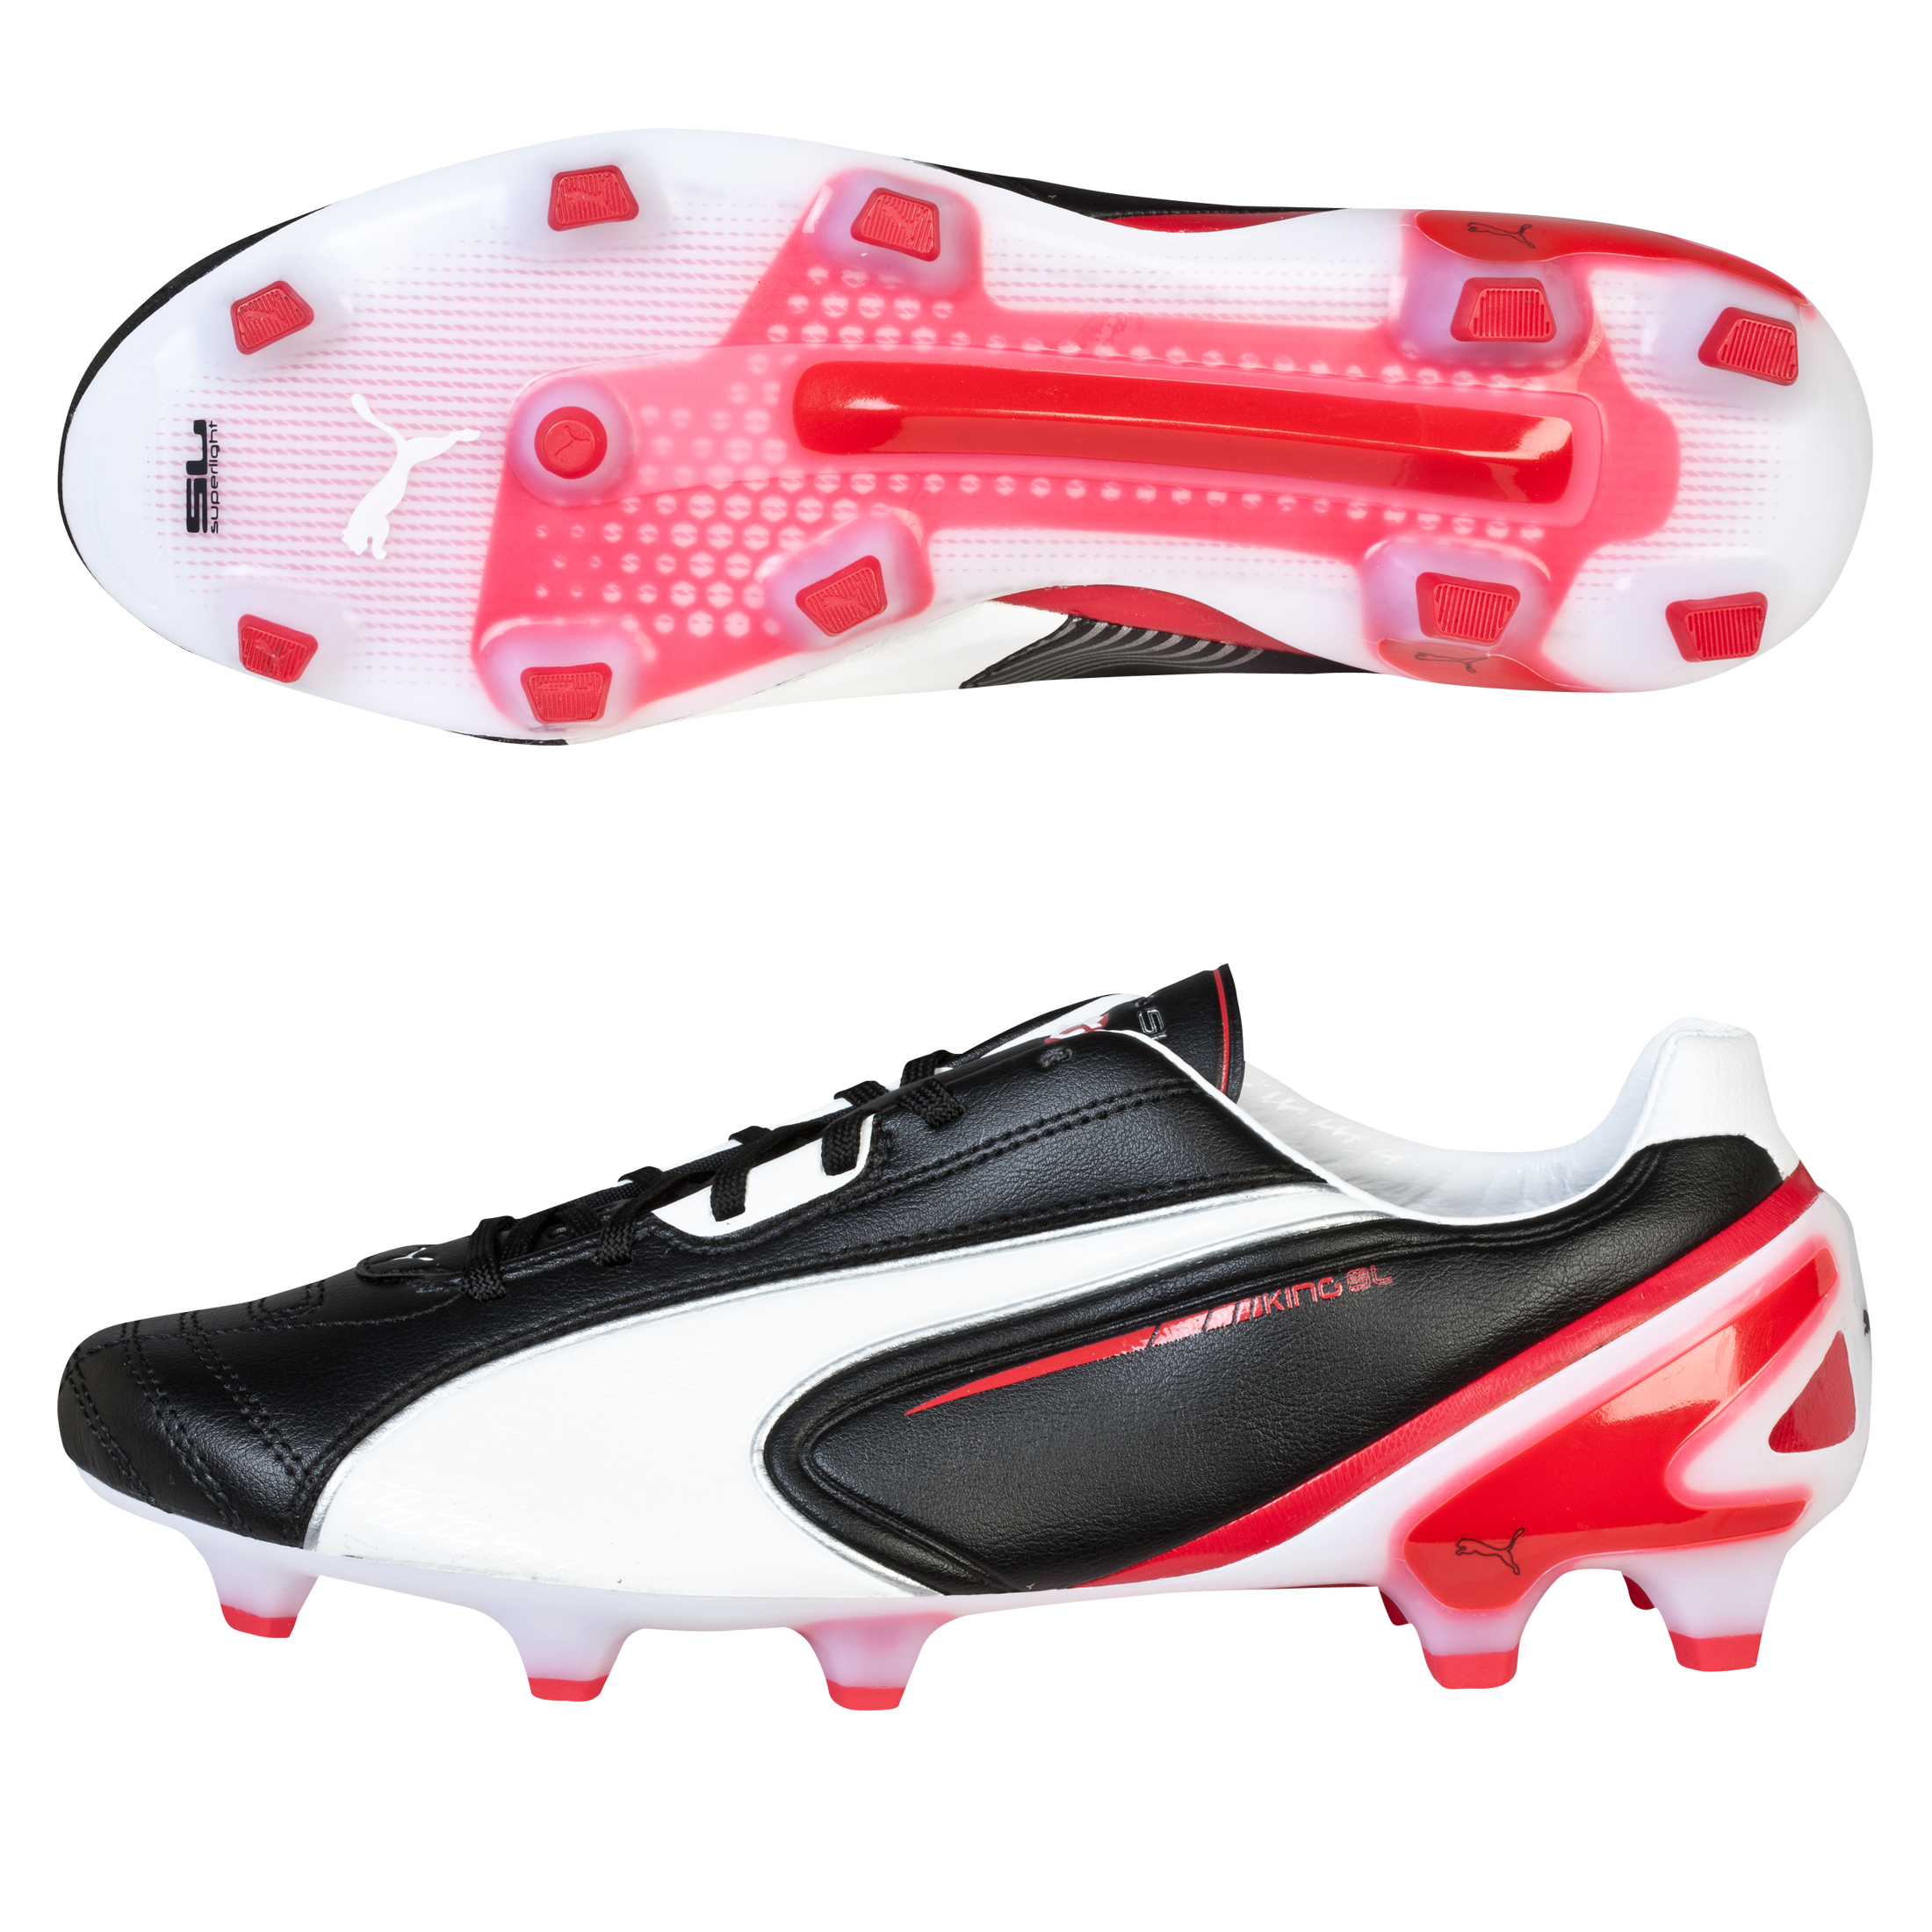 Puma King SL Firm Ground Football Boots - Black/White/Ribbon Red